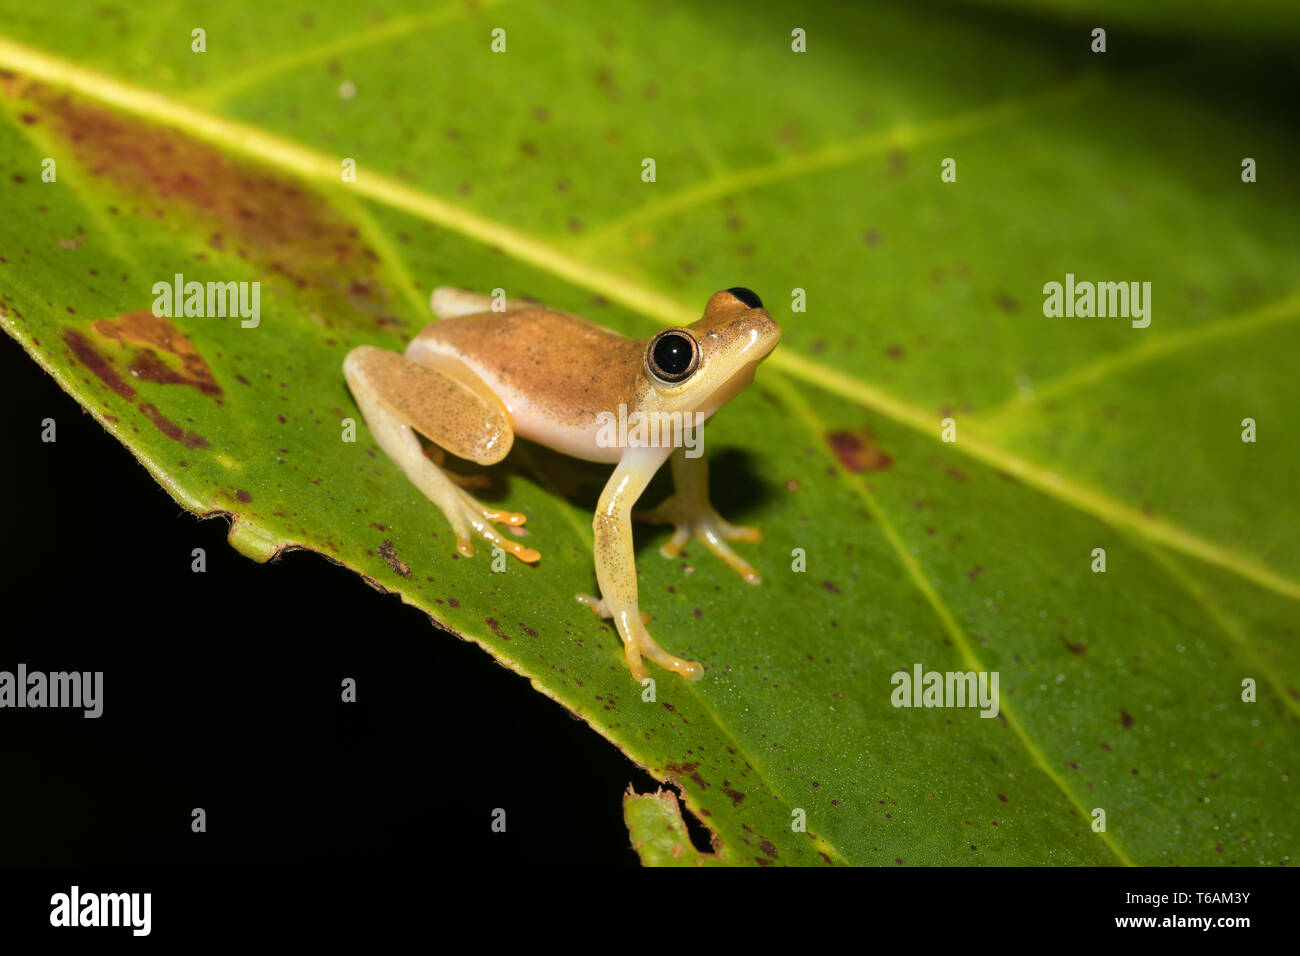 Small yellow tree frog from boophis family, madagascar Stock Photo